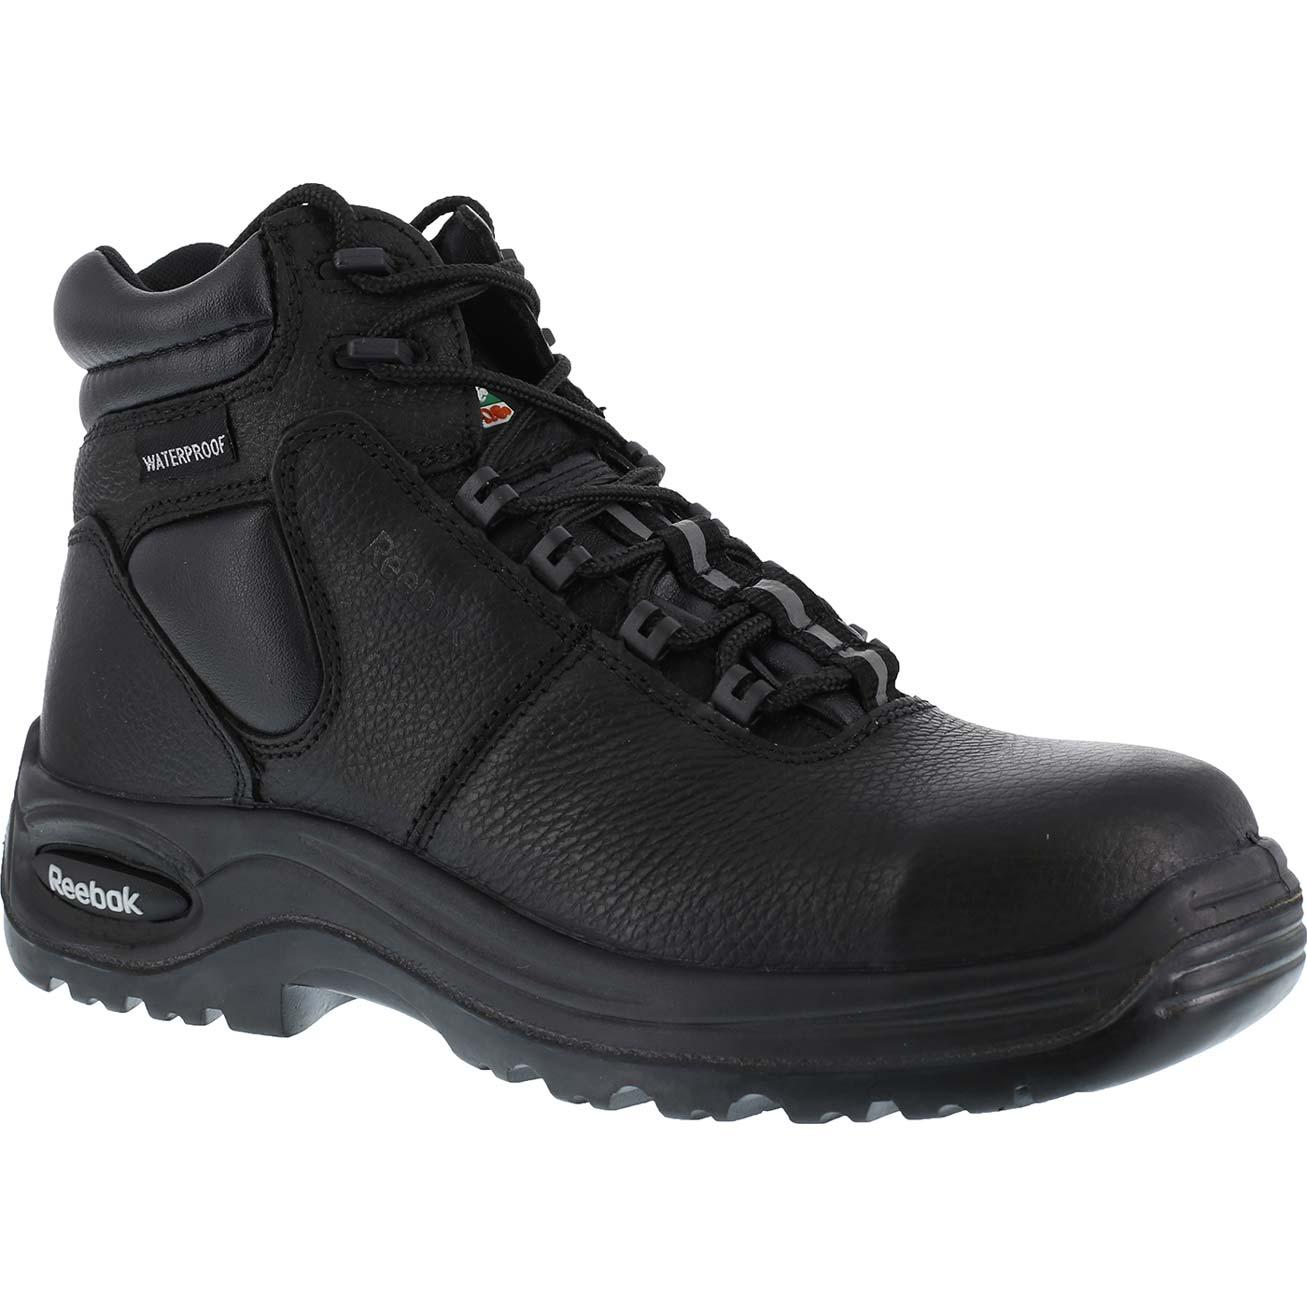 73cc9501bc01 Reebok Trainex Composite Toe CSA-Approved Puncture-Resistant Waterproof  Work Hiker